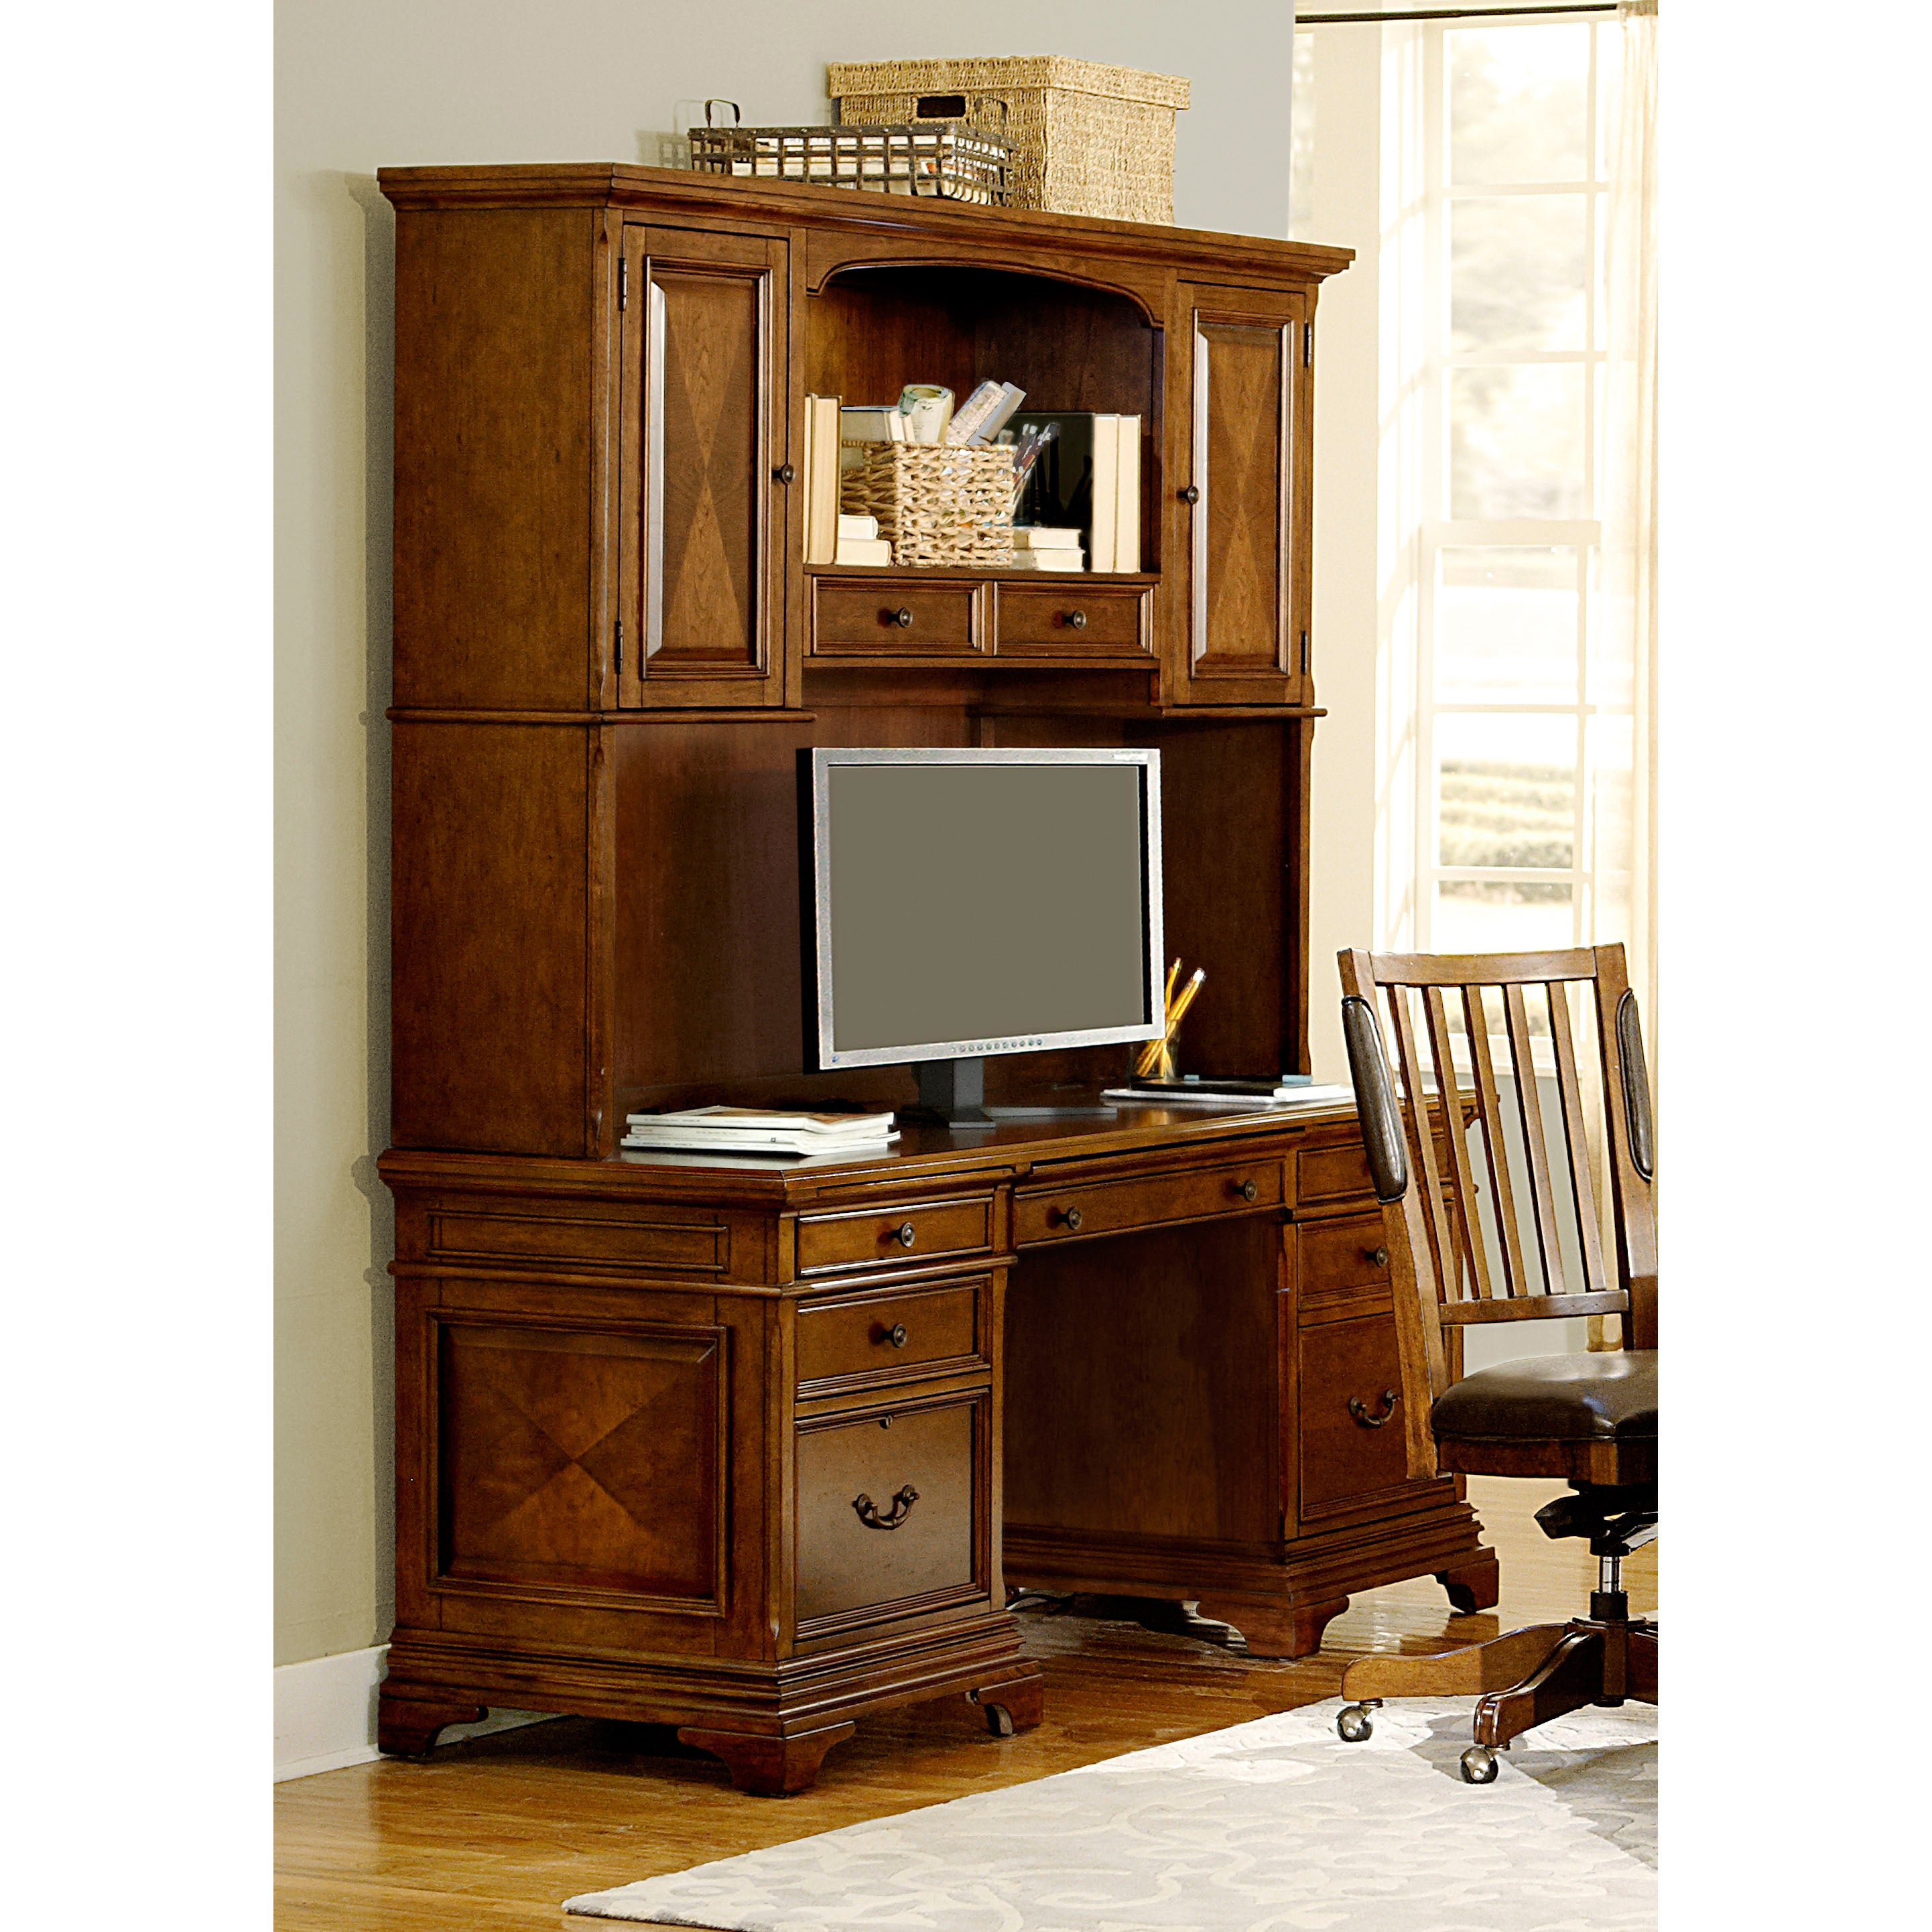 Ethan 66 Inch Curved Exec Desk Credenza Hutch File And Chair Free Shipping Today 16671144